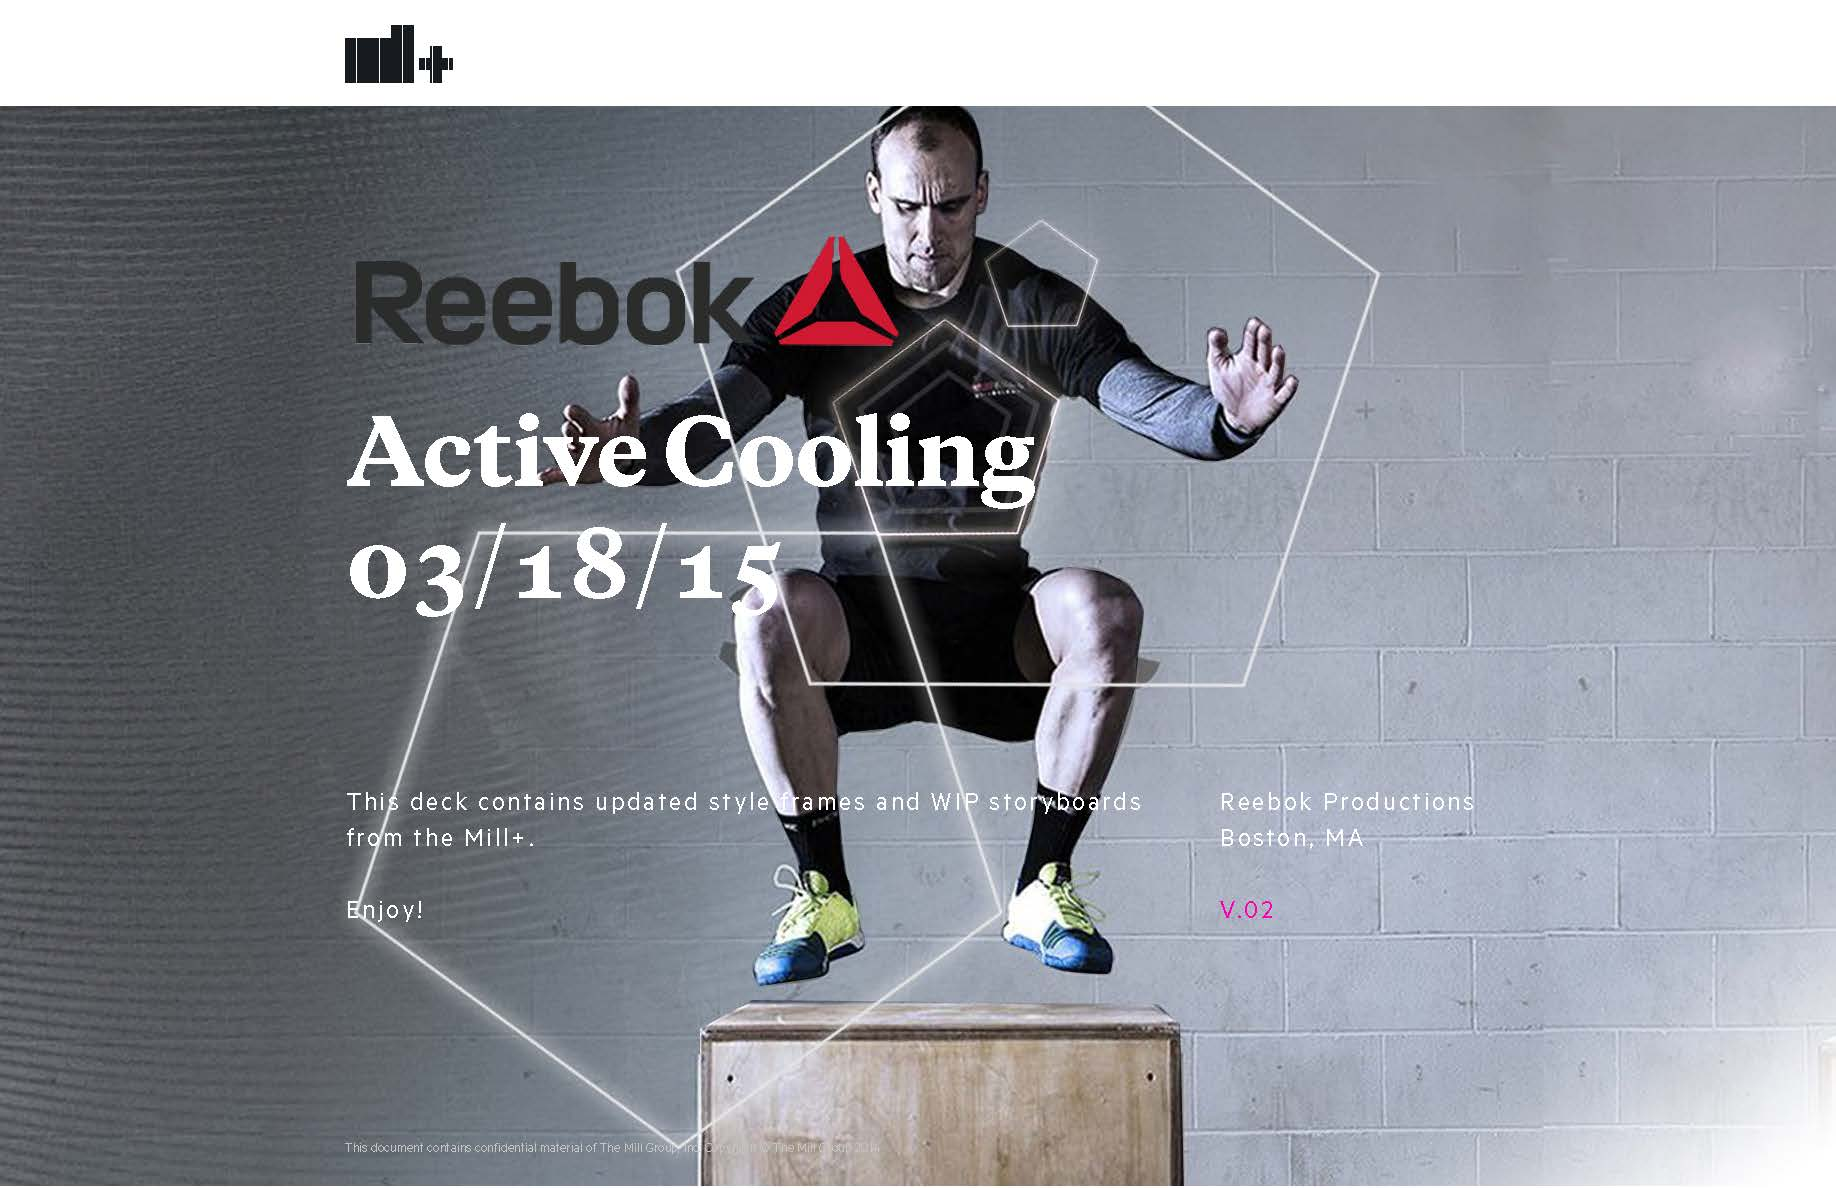 031914_Mill_Reebok_Active_Cooling_NW_17_Page_01.jpg